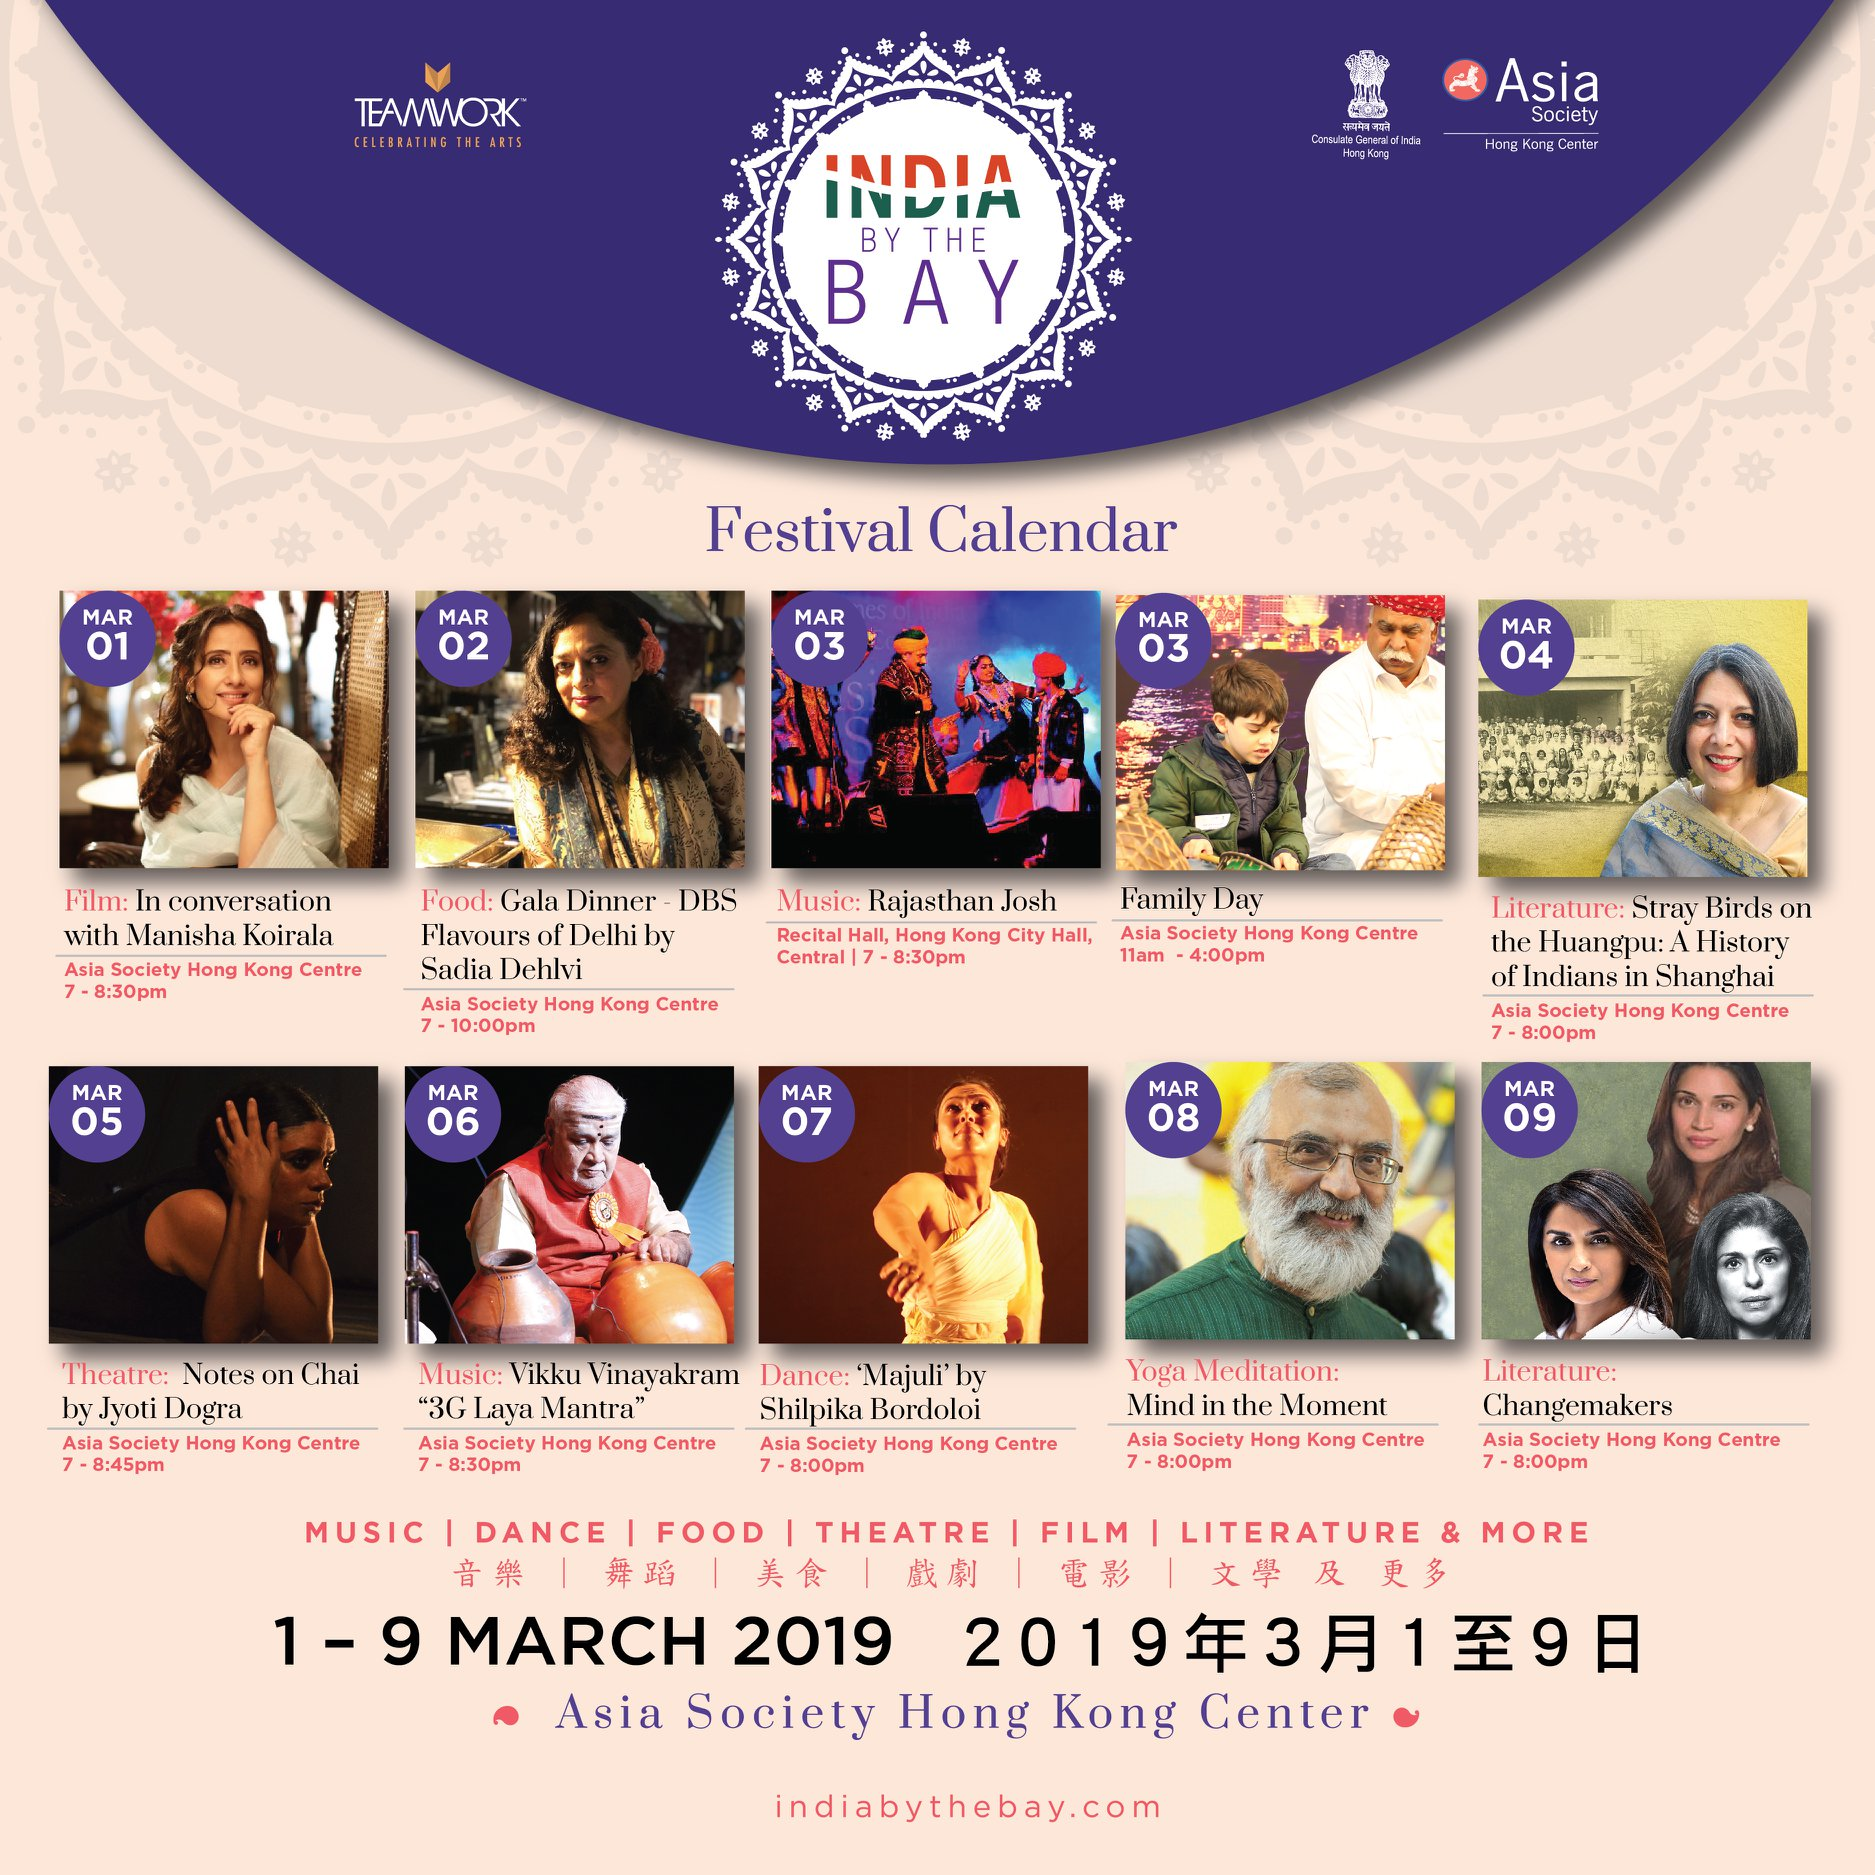 india-by-the-bay-2019-festival-calendar-schedule-of-events